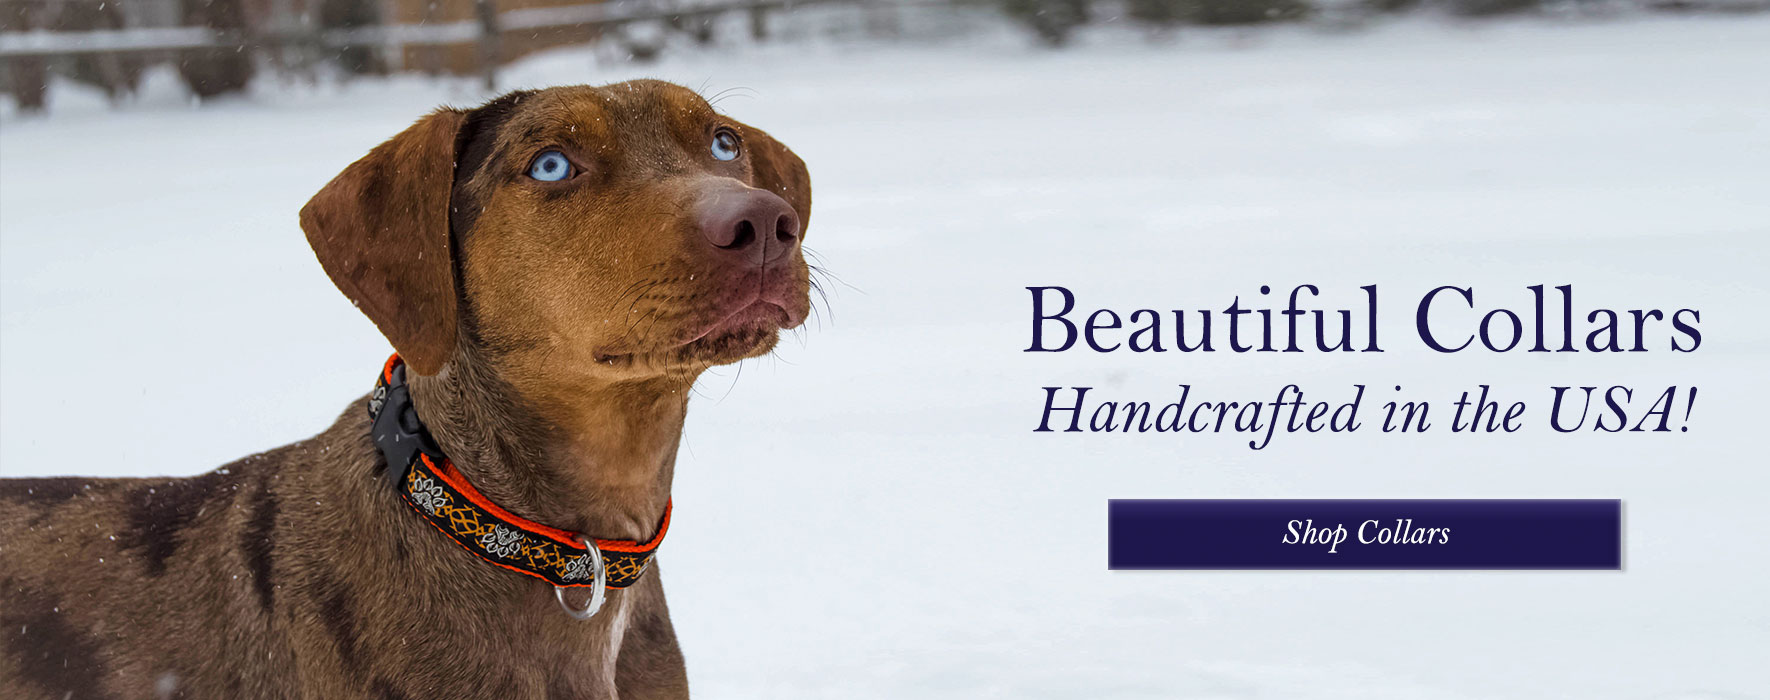 Shop Beautiful Collars